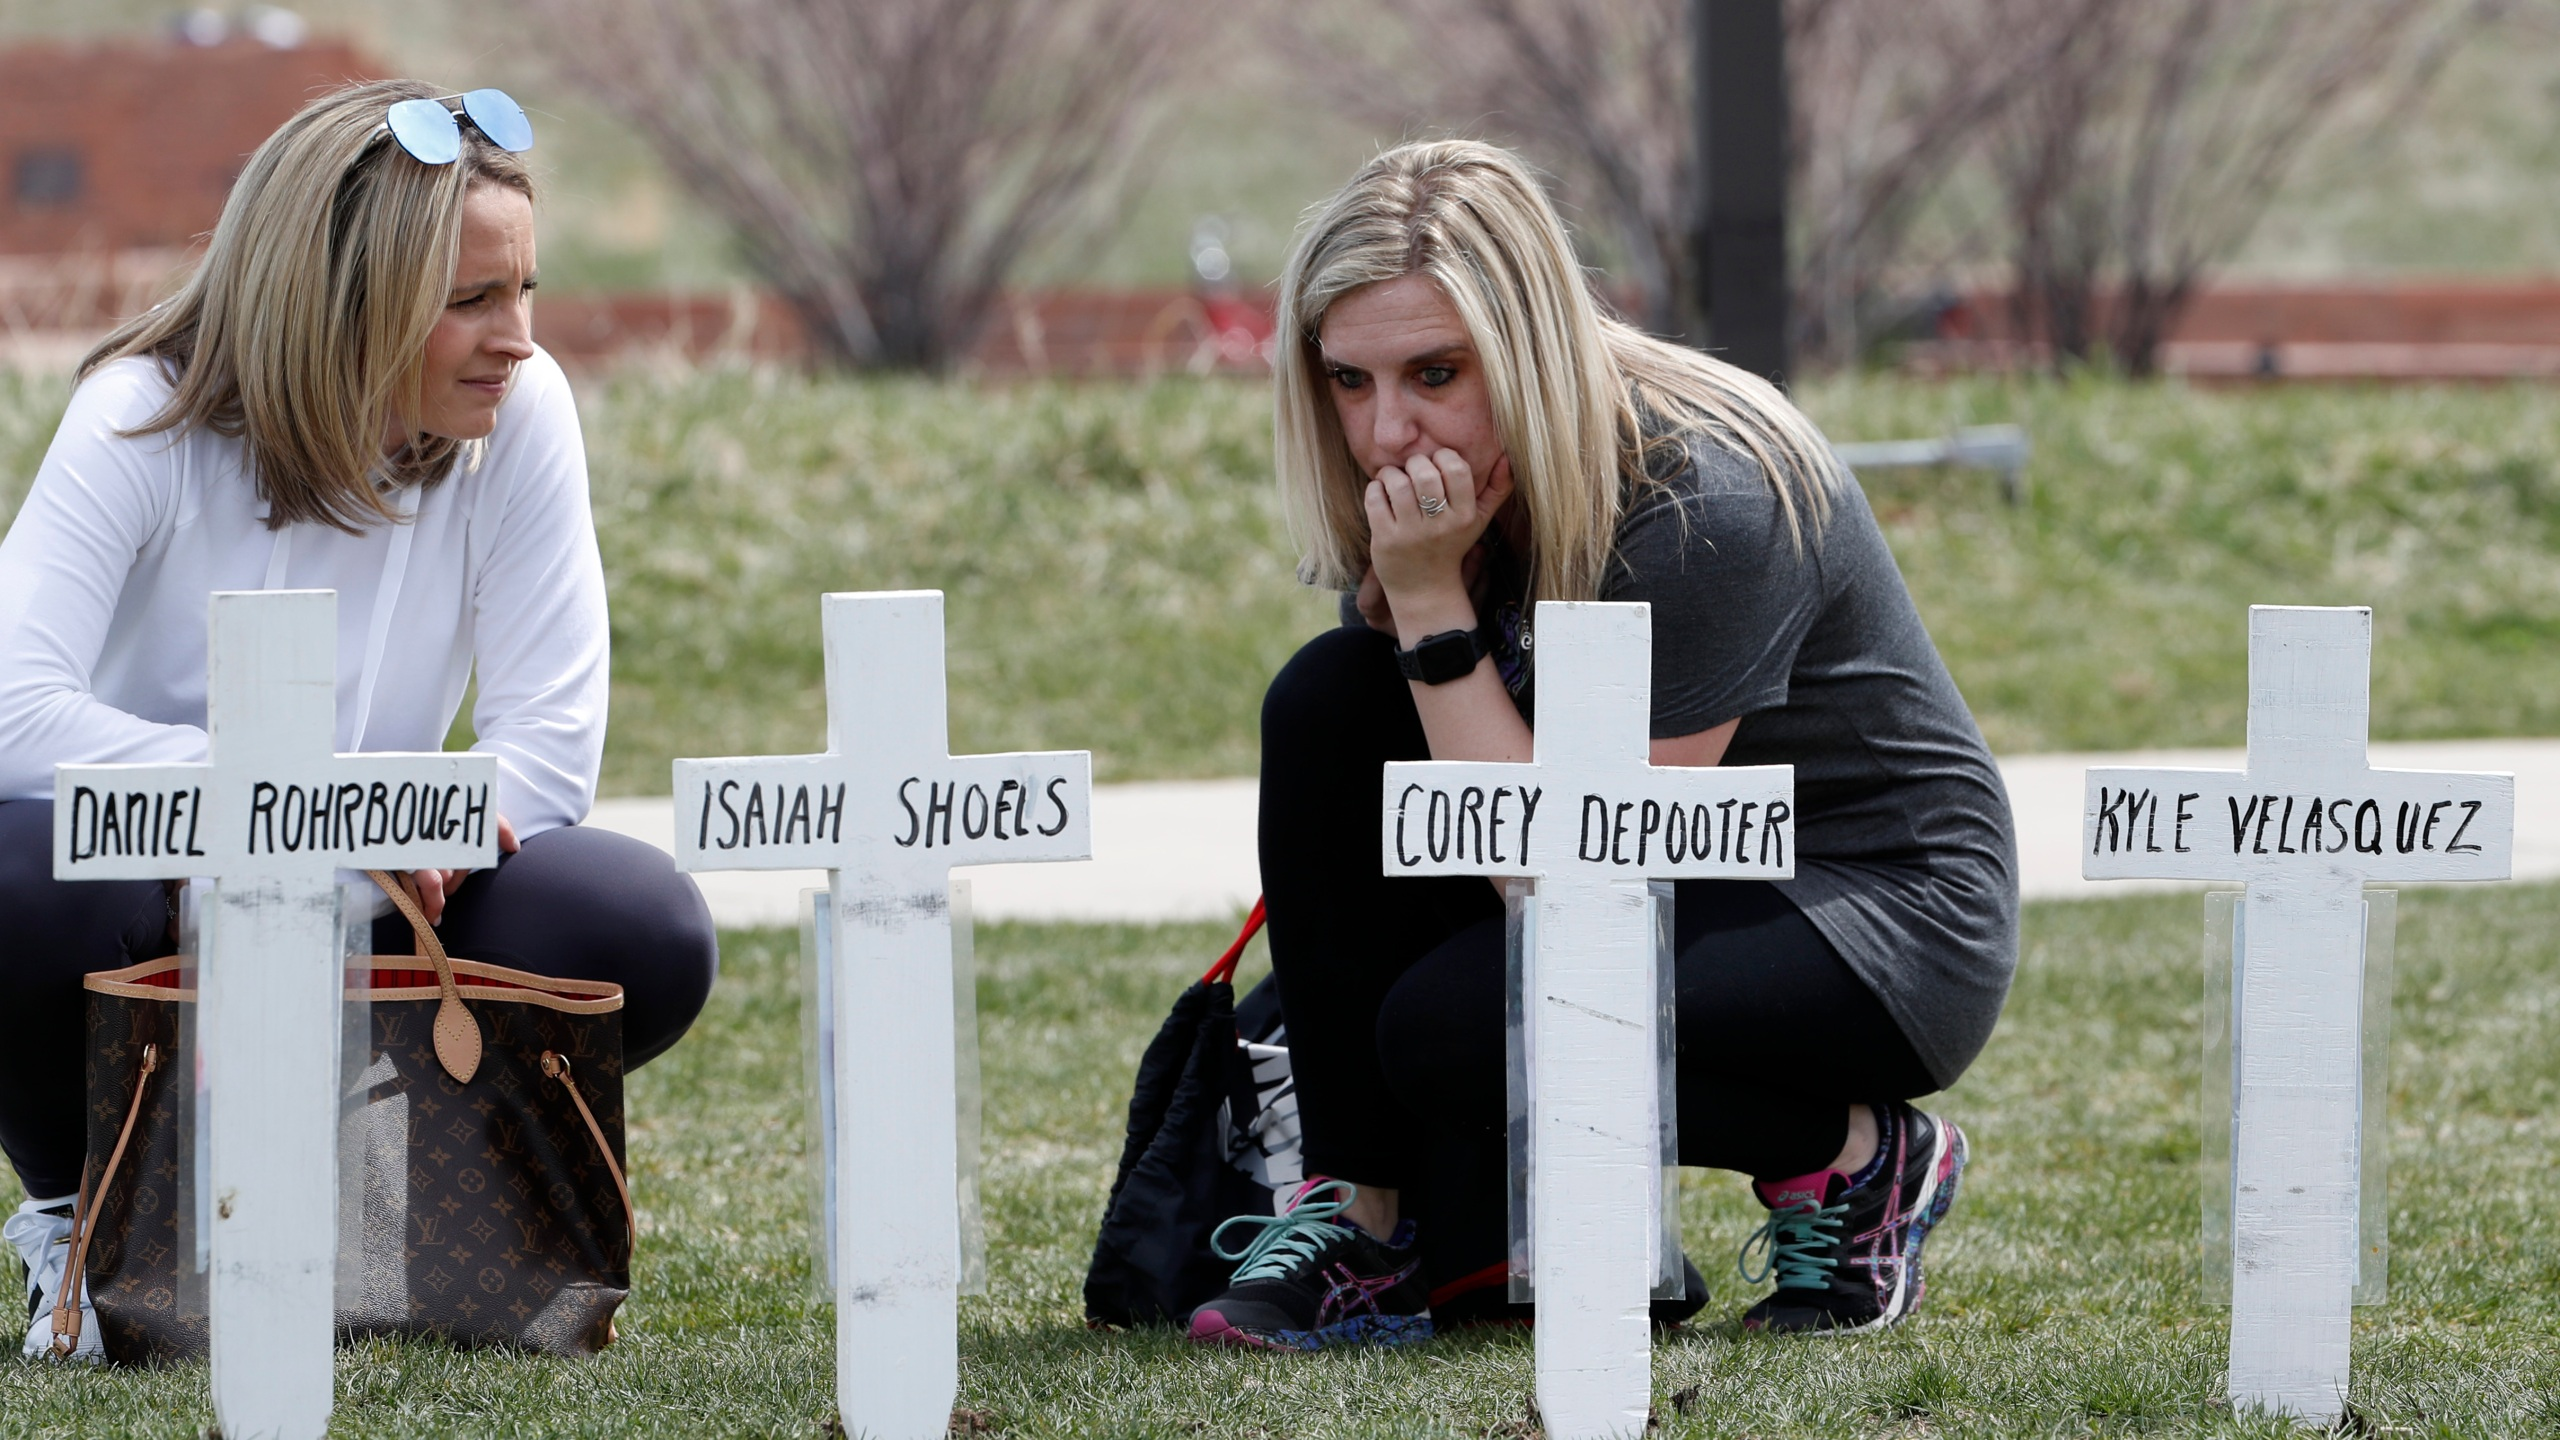 Columbine_20_Years_Later_Remembering_The_Victims_22154-159532.jpg66274447